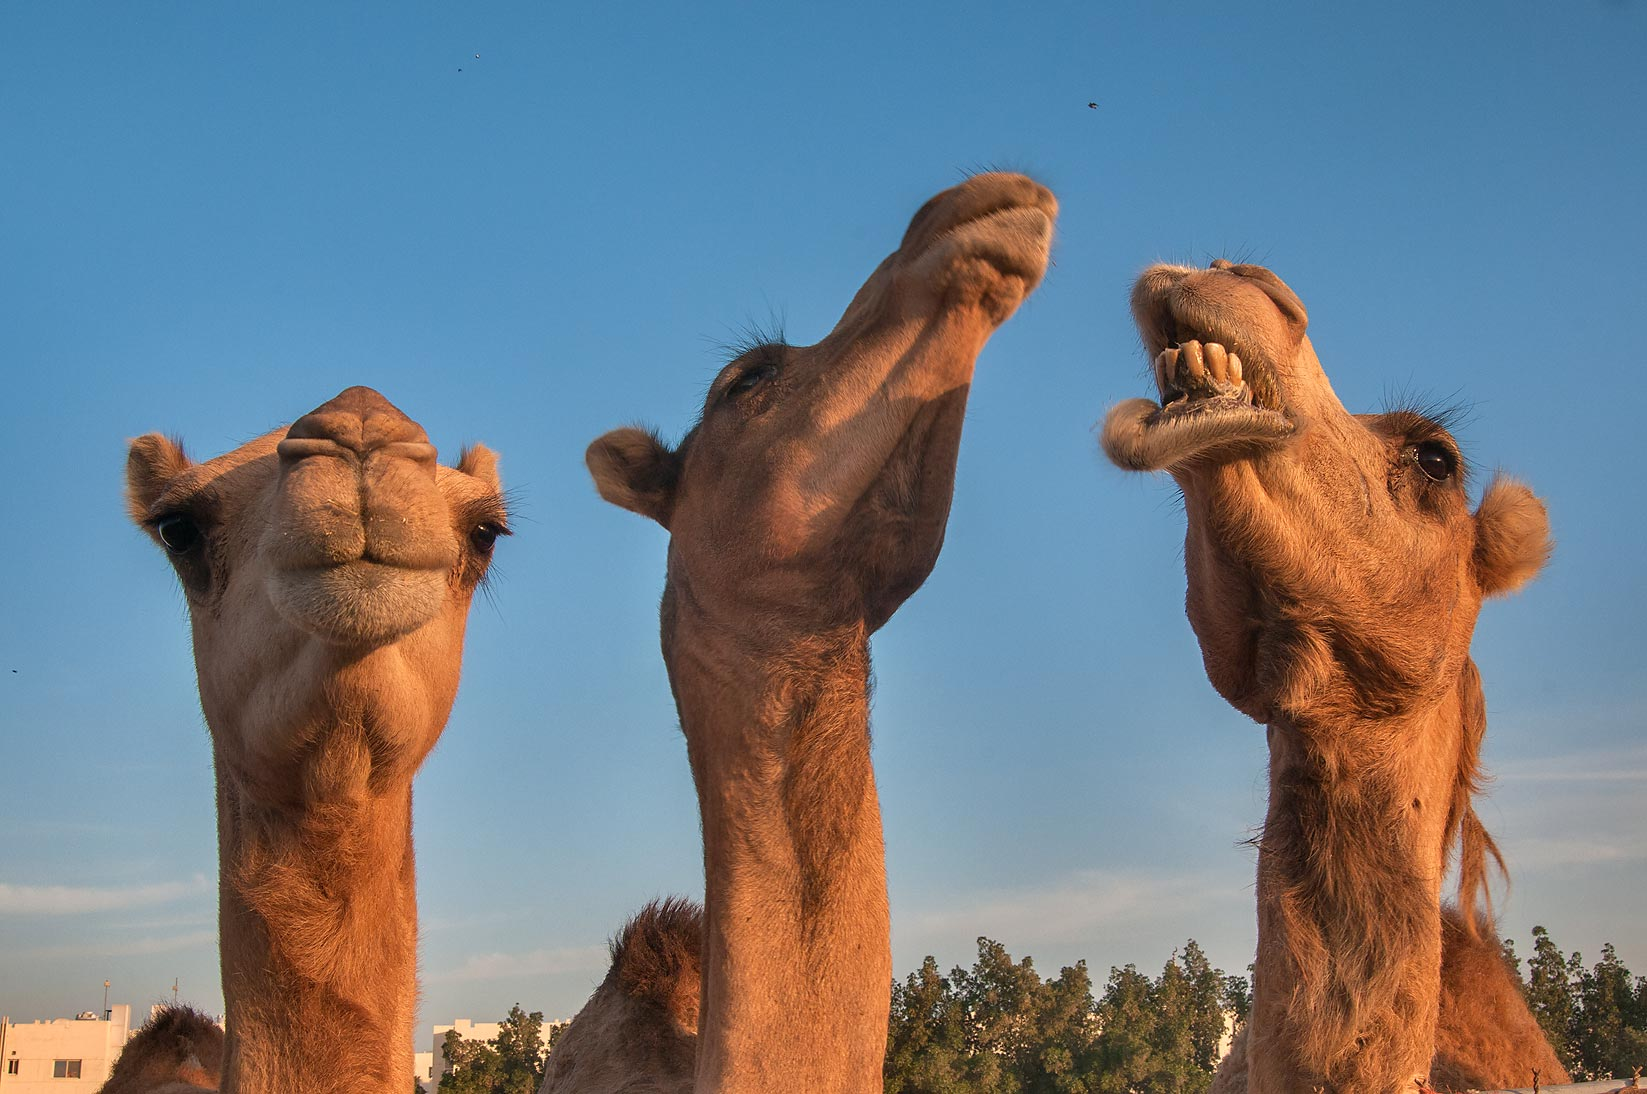 Three camels in Camel Market, Wholesale Markets area. Doha, Qatar